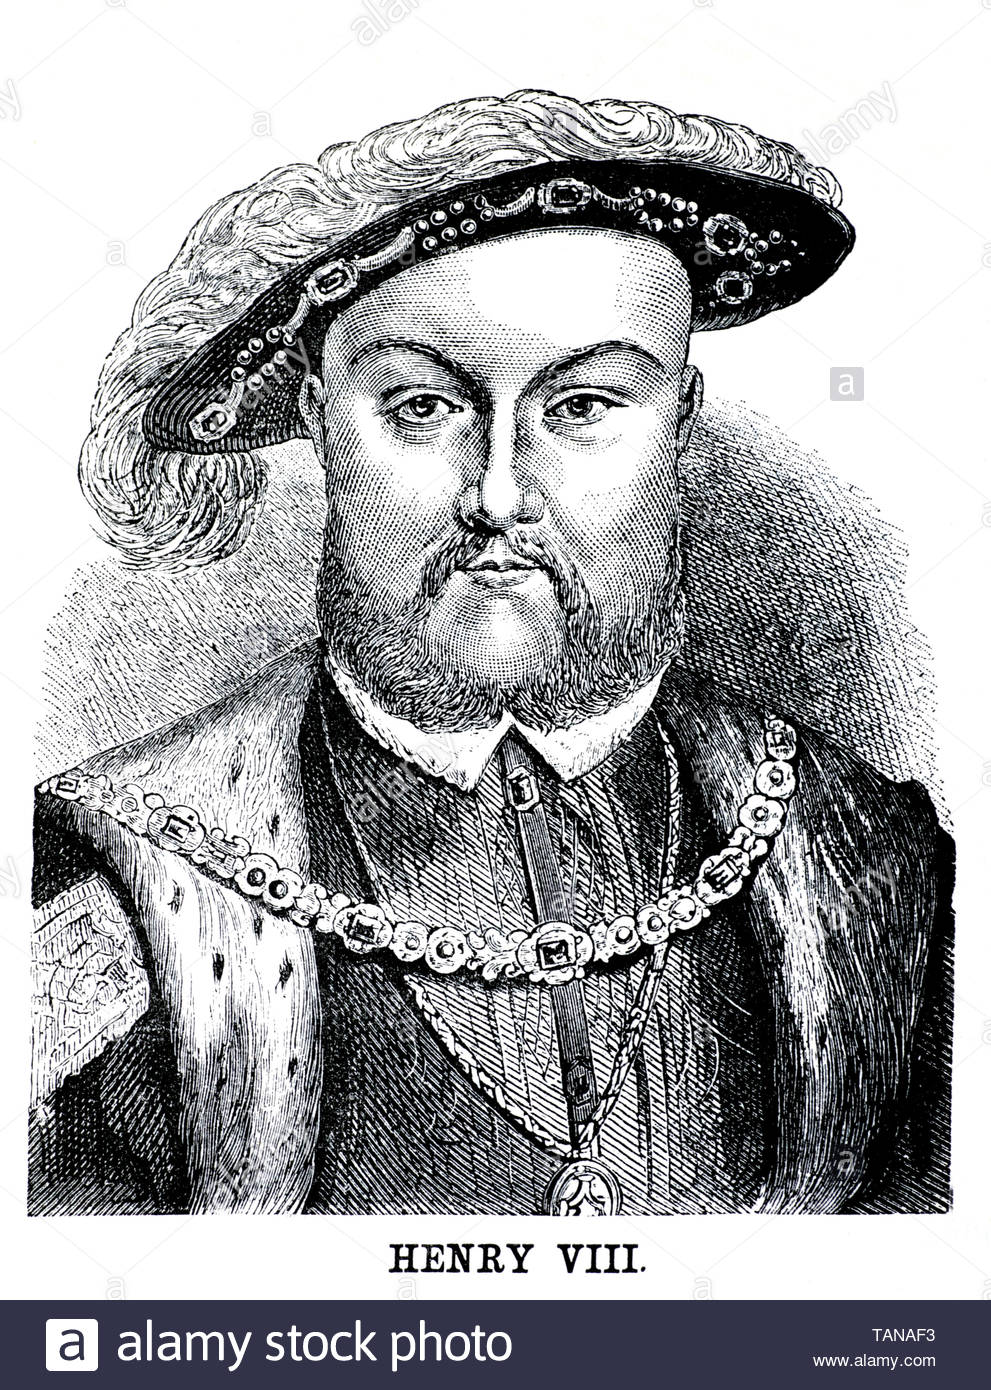 Henry VIII, 1491 –  1547, was King of England from 1509 until his death in 1547 - Stock Image